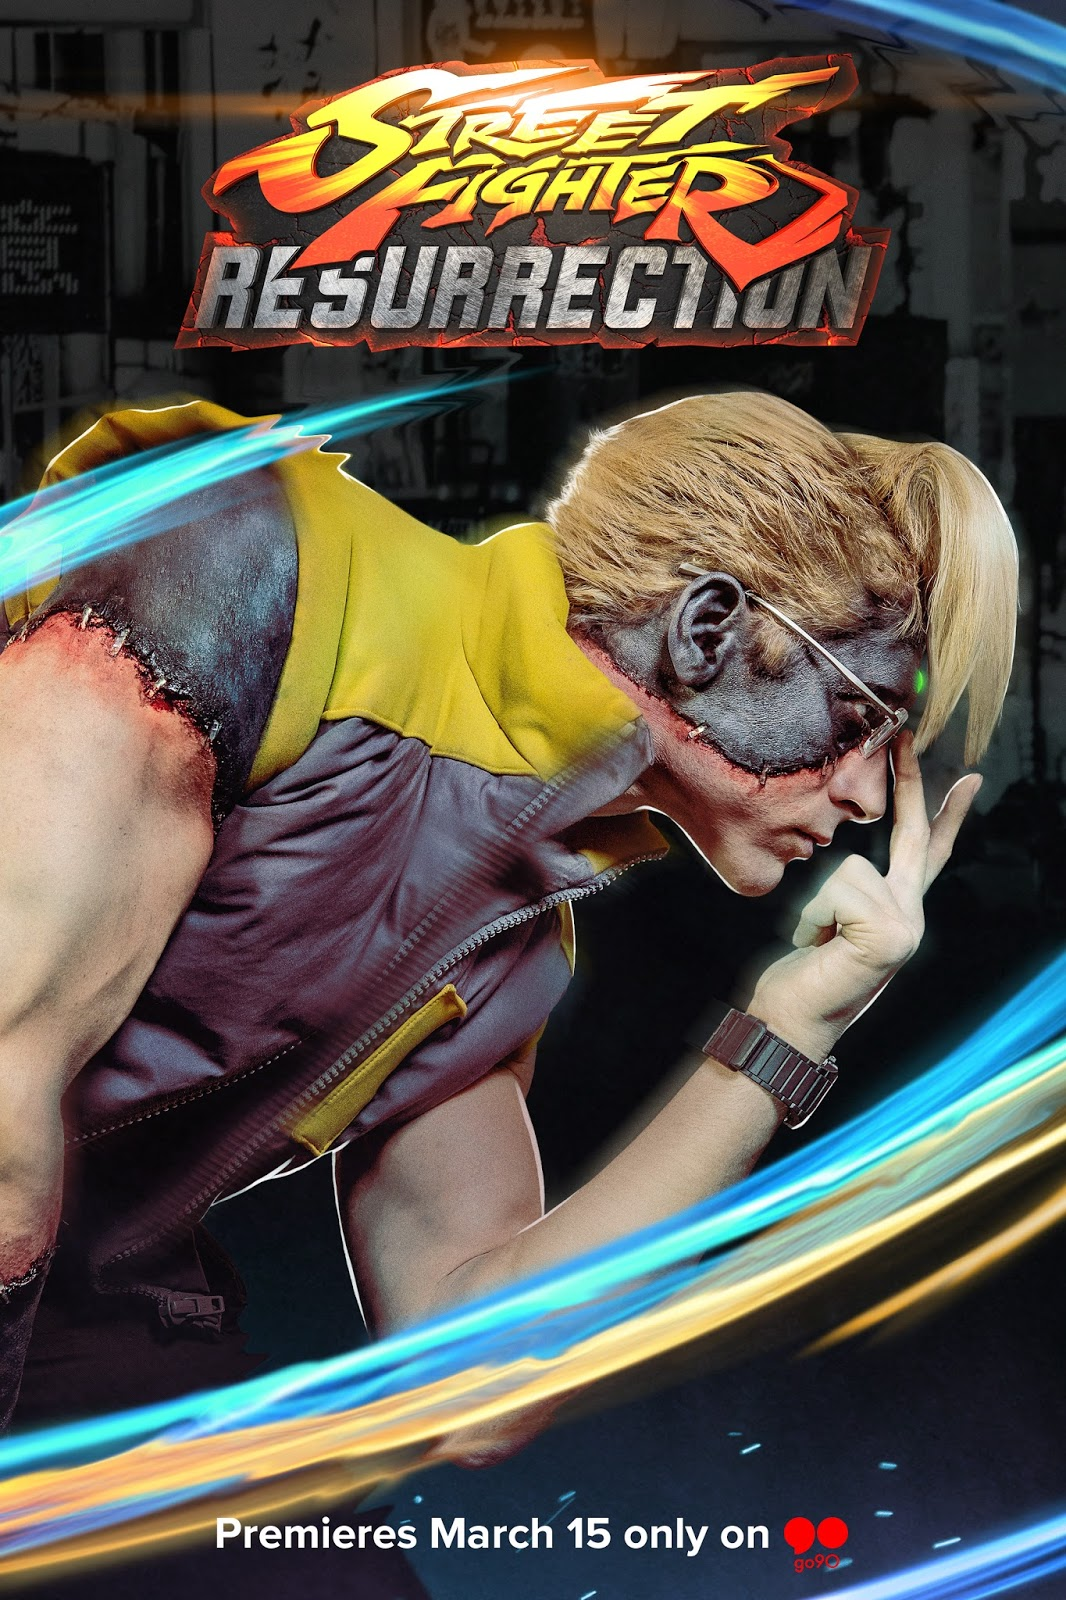 Street Fighter: Resurrection Legendado